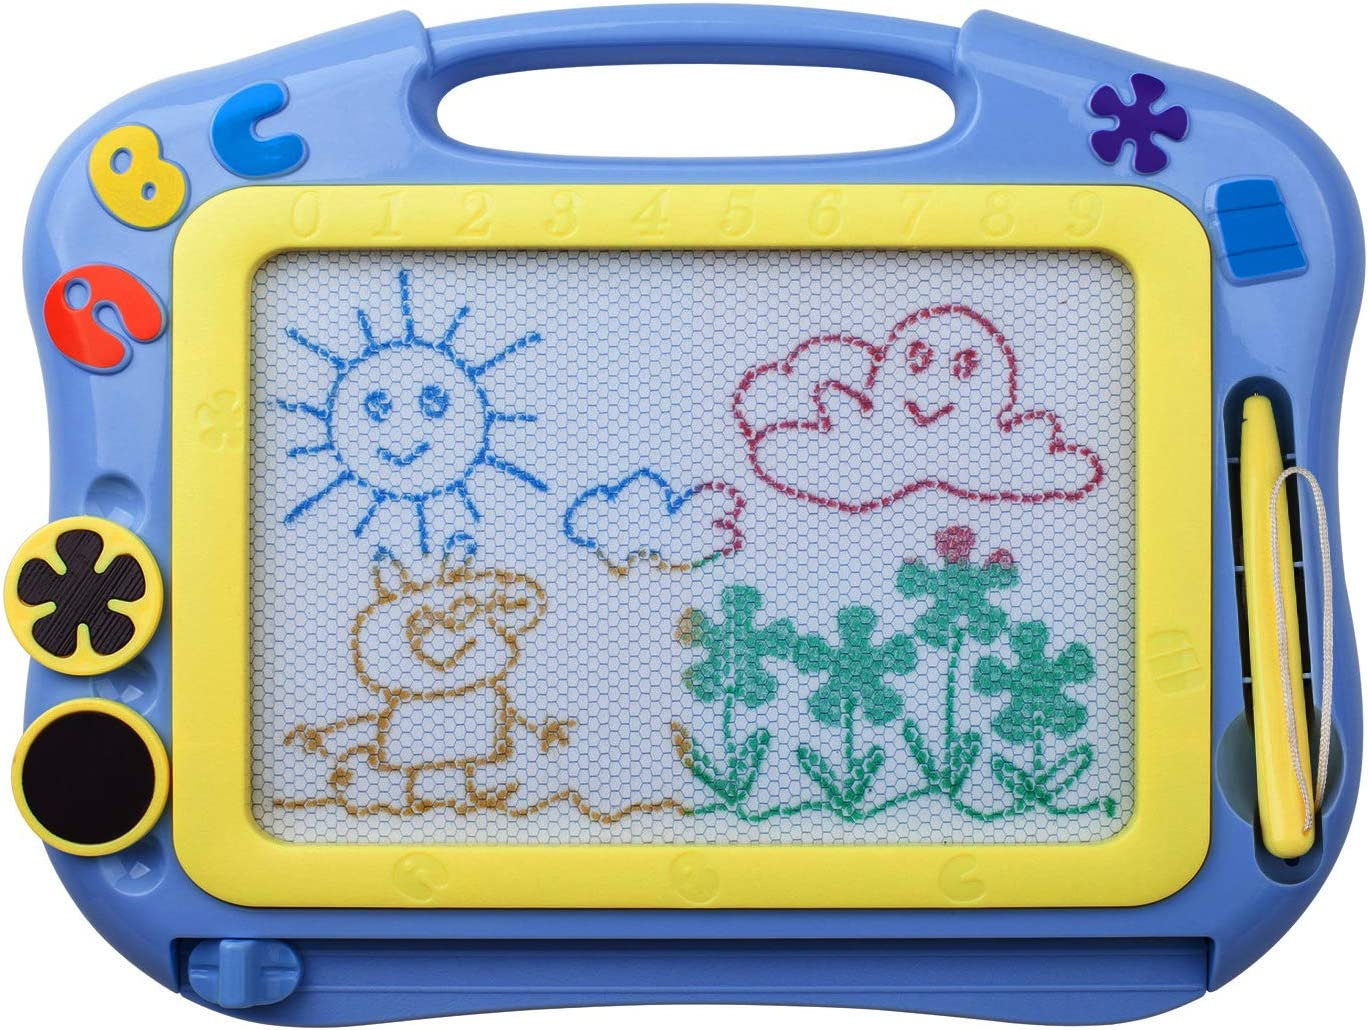 ikidsislands IKS85B [Travel Size] Color Magnetic Drawing Board for Kids, Doodle Board for Toddlers